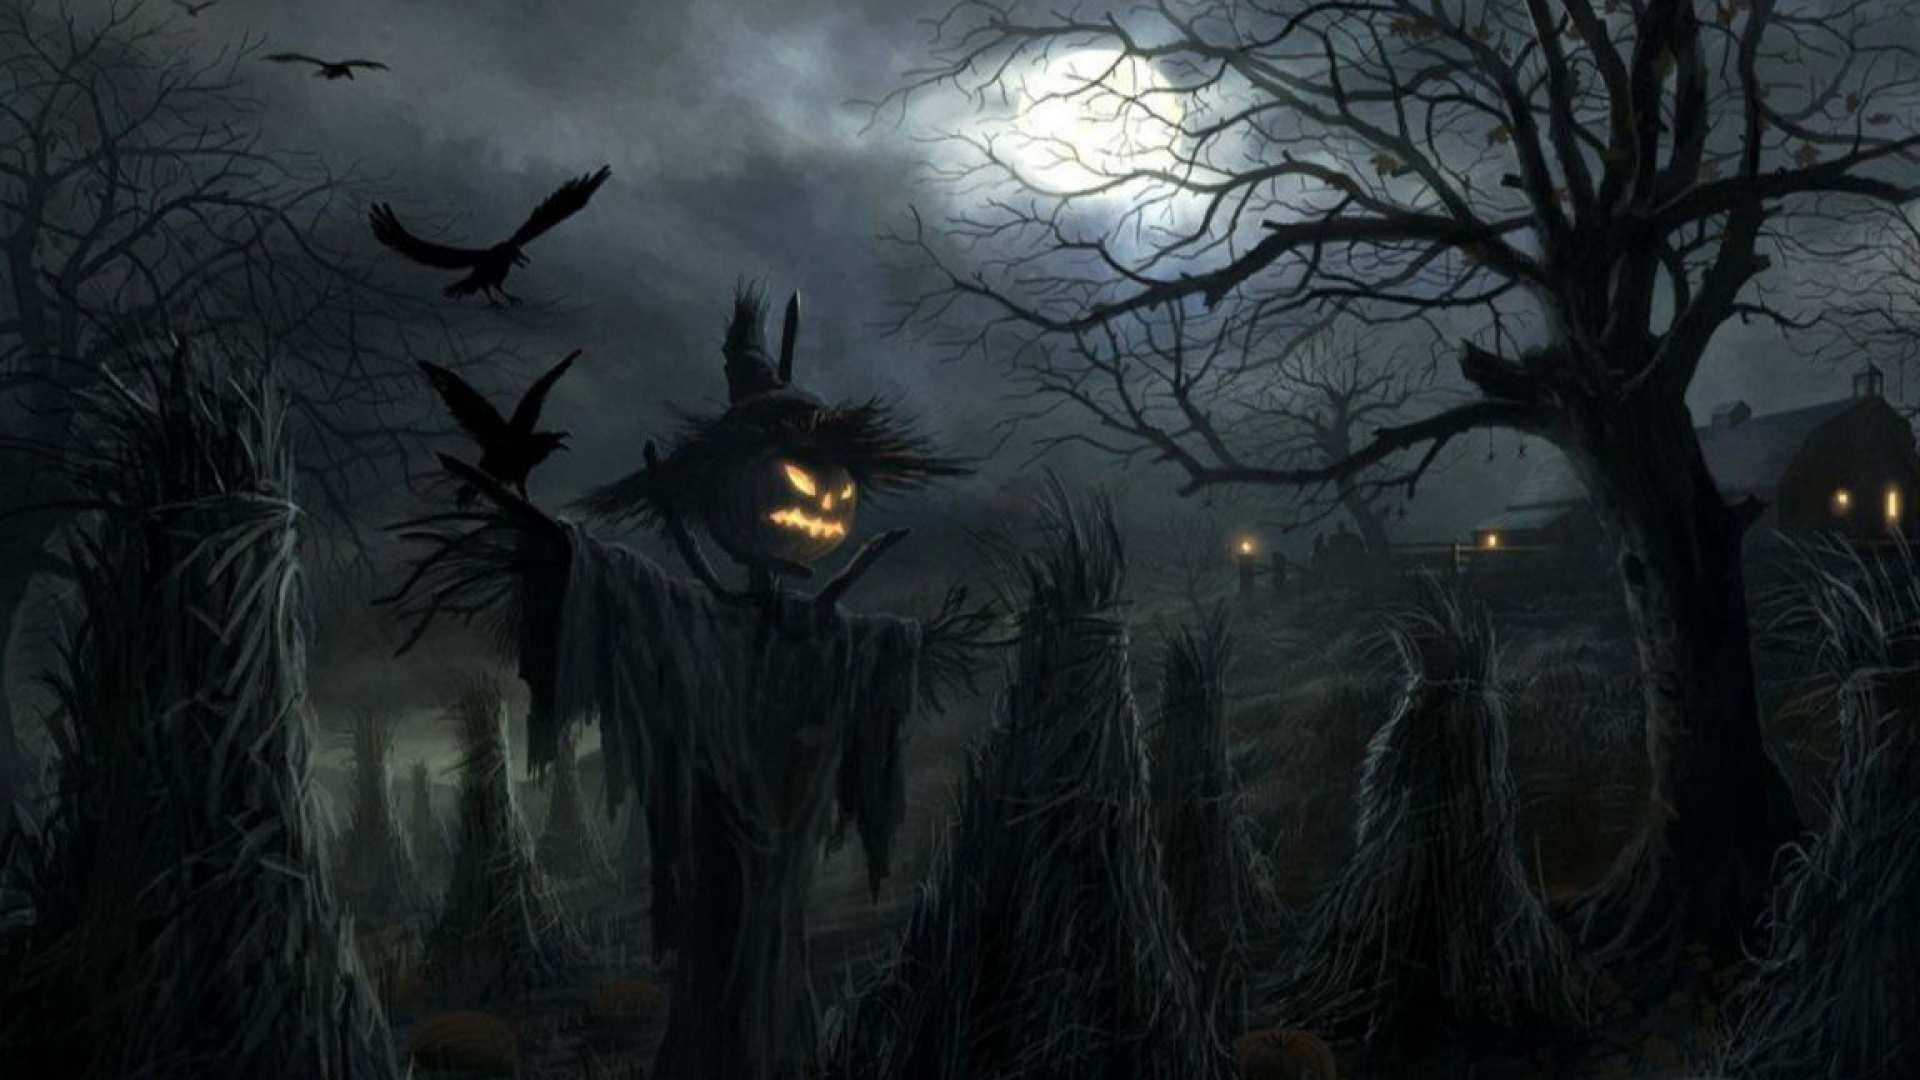 wallpapers halloween scarecrow gallery 1920x1080 1920x1080